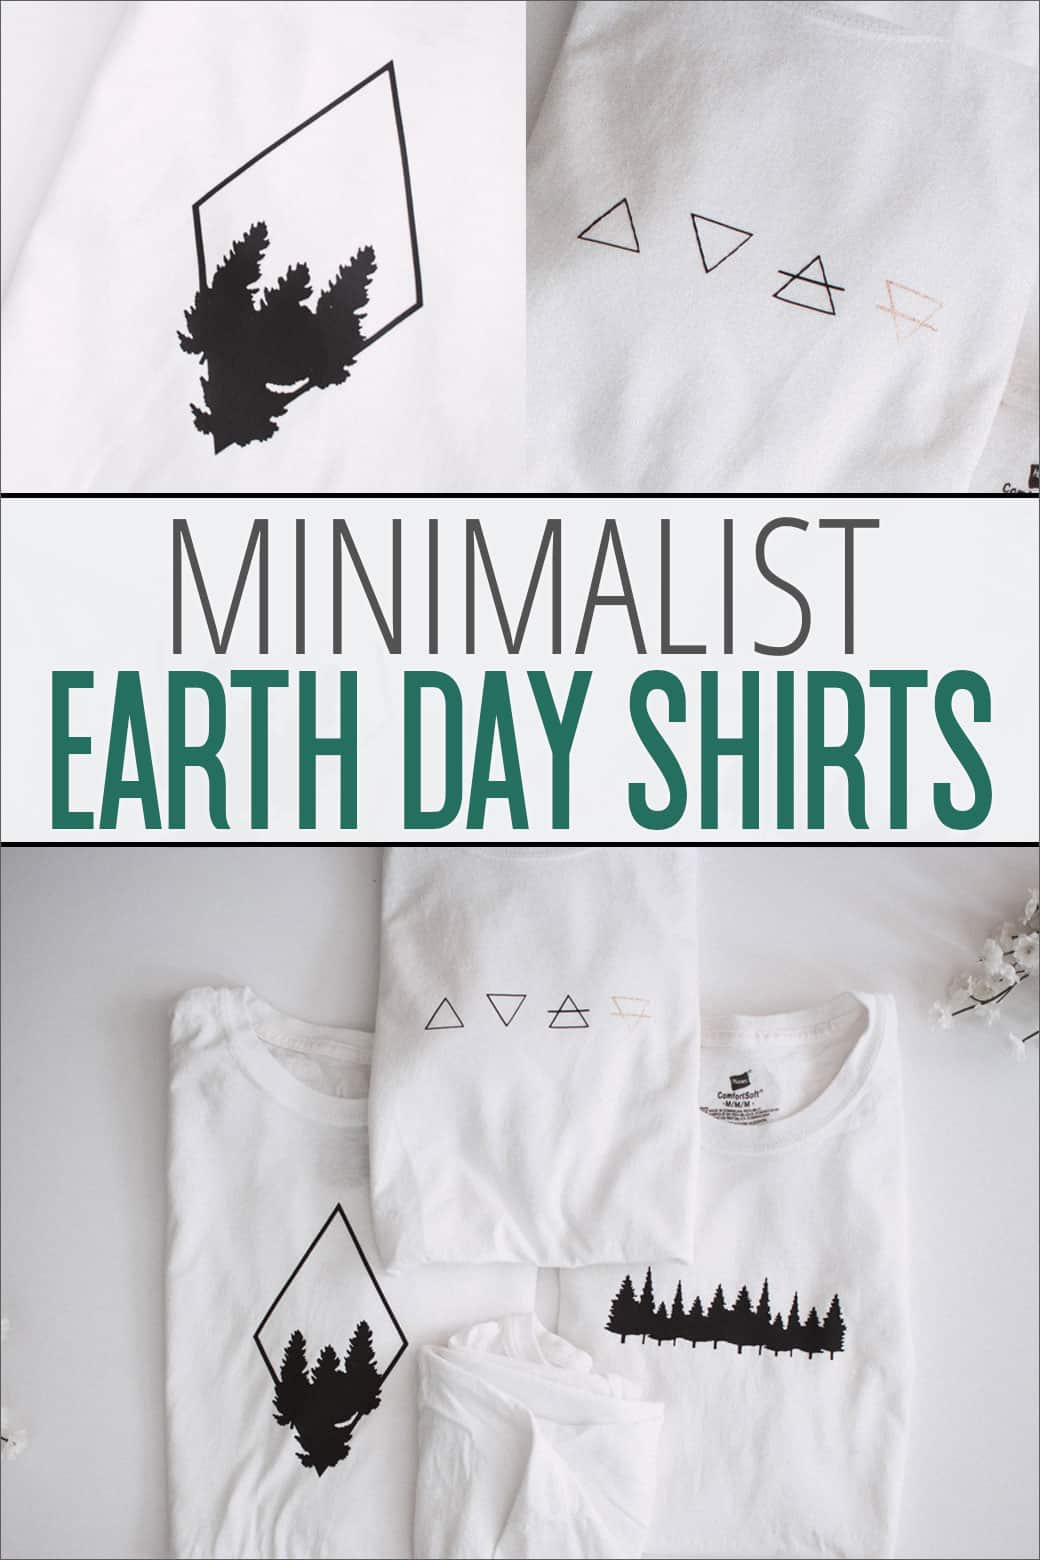 These minimalist Earth Day Tee Shirts are perfect for any volunteer group or nature lover whether you're celebrating Earth Day or just want a new hiking tee!